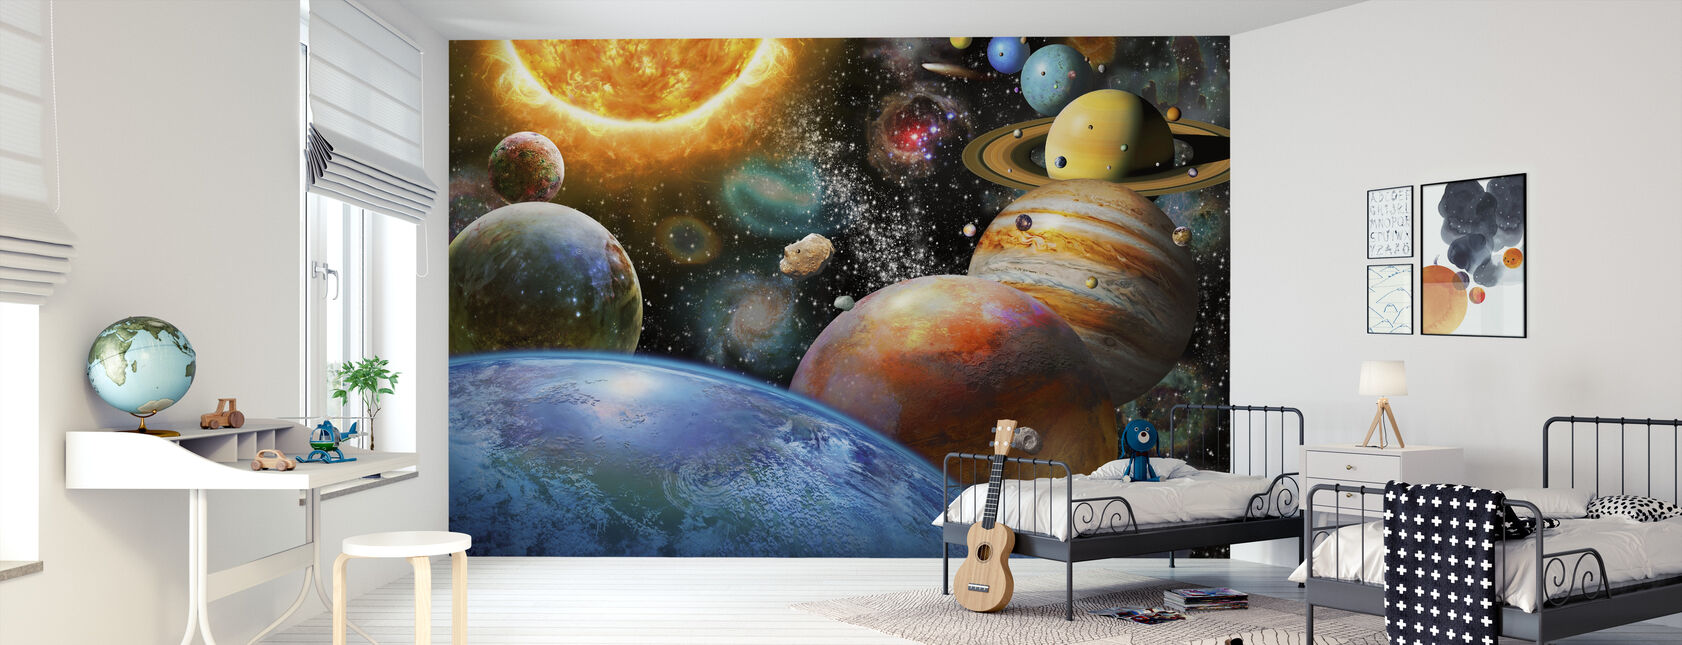 Planets and Their Moons - Wallpaper - Kids Room